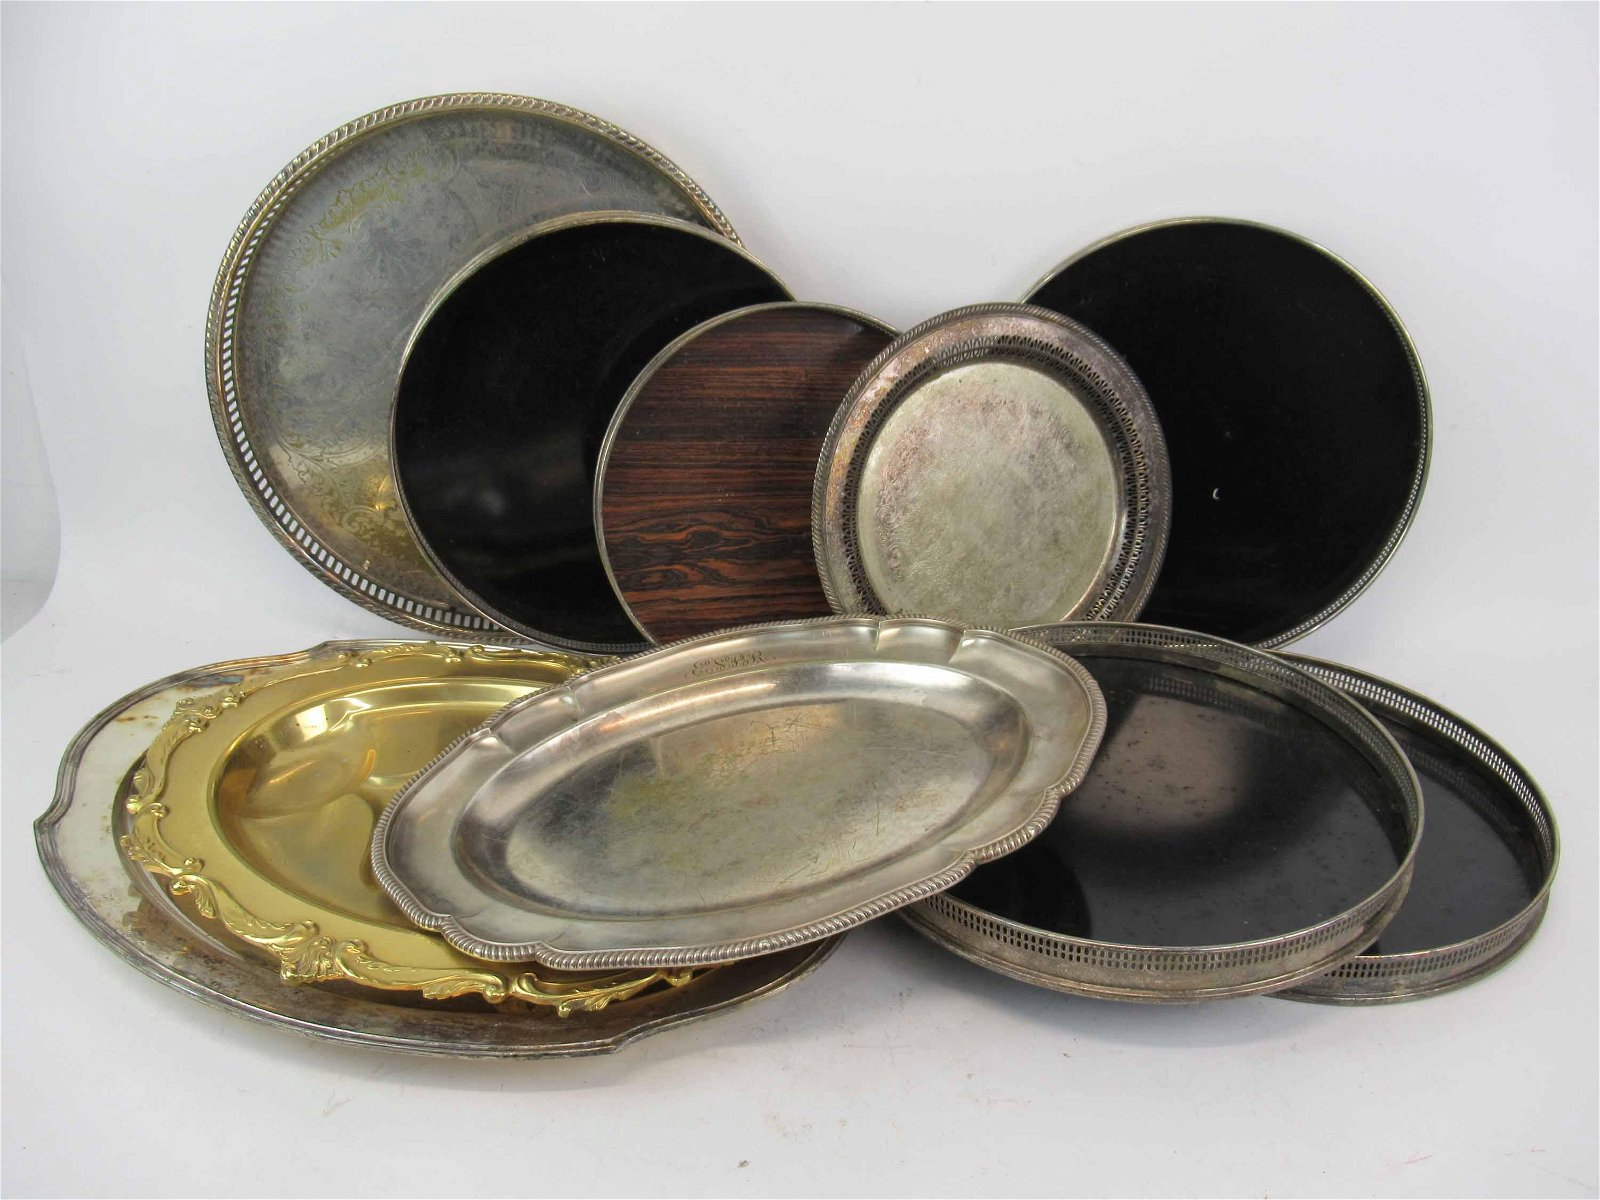 Group of 10 Assorted Silver Plated Serving Trays